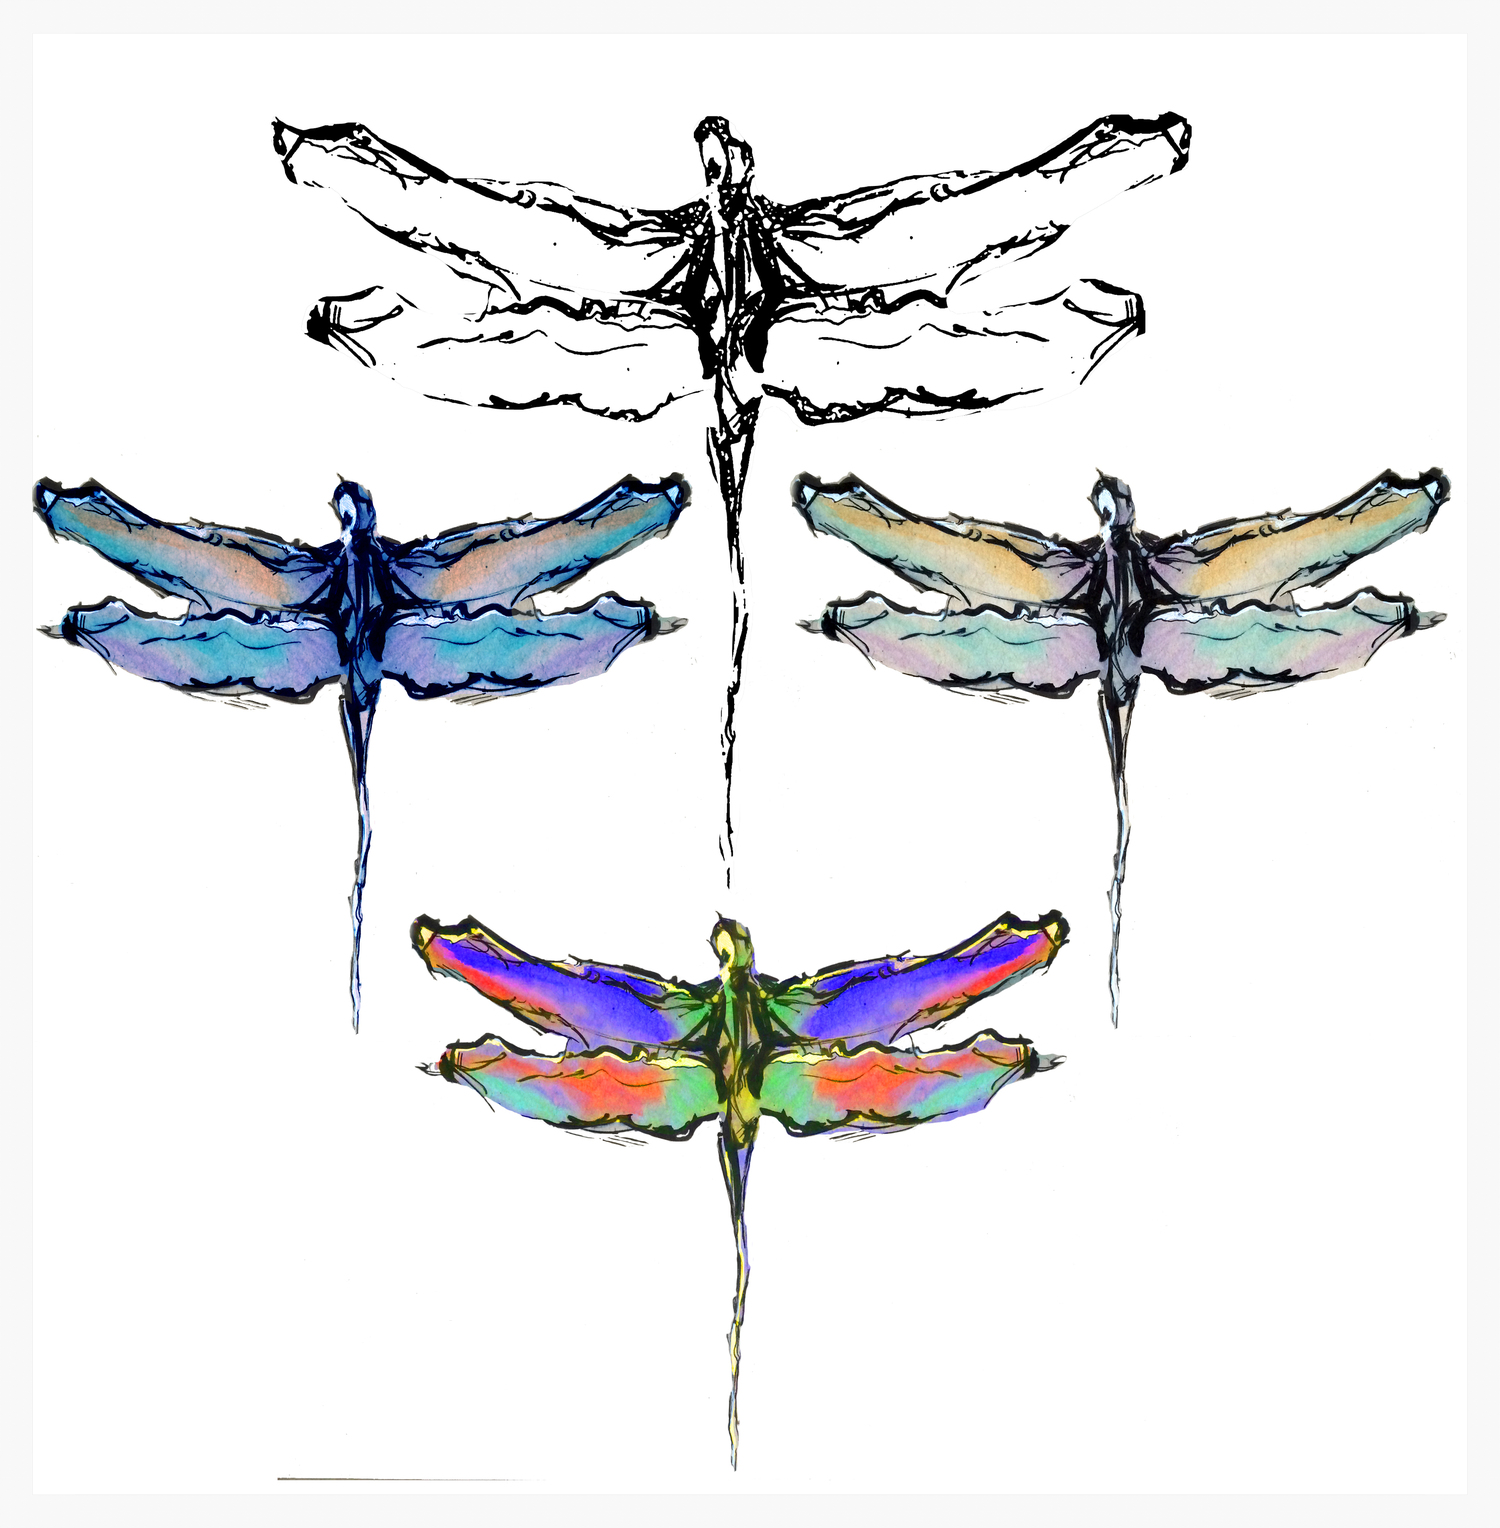 Watercolor Dragonfly for my mom. Right; Orginal, Bottom; Heavy Saturation, Left; Blue, Above; Outline